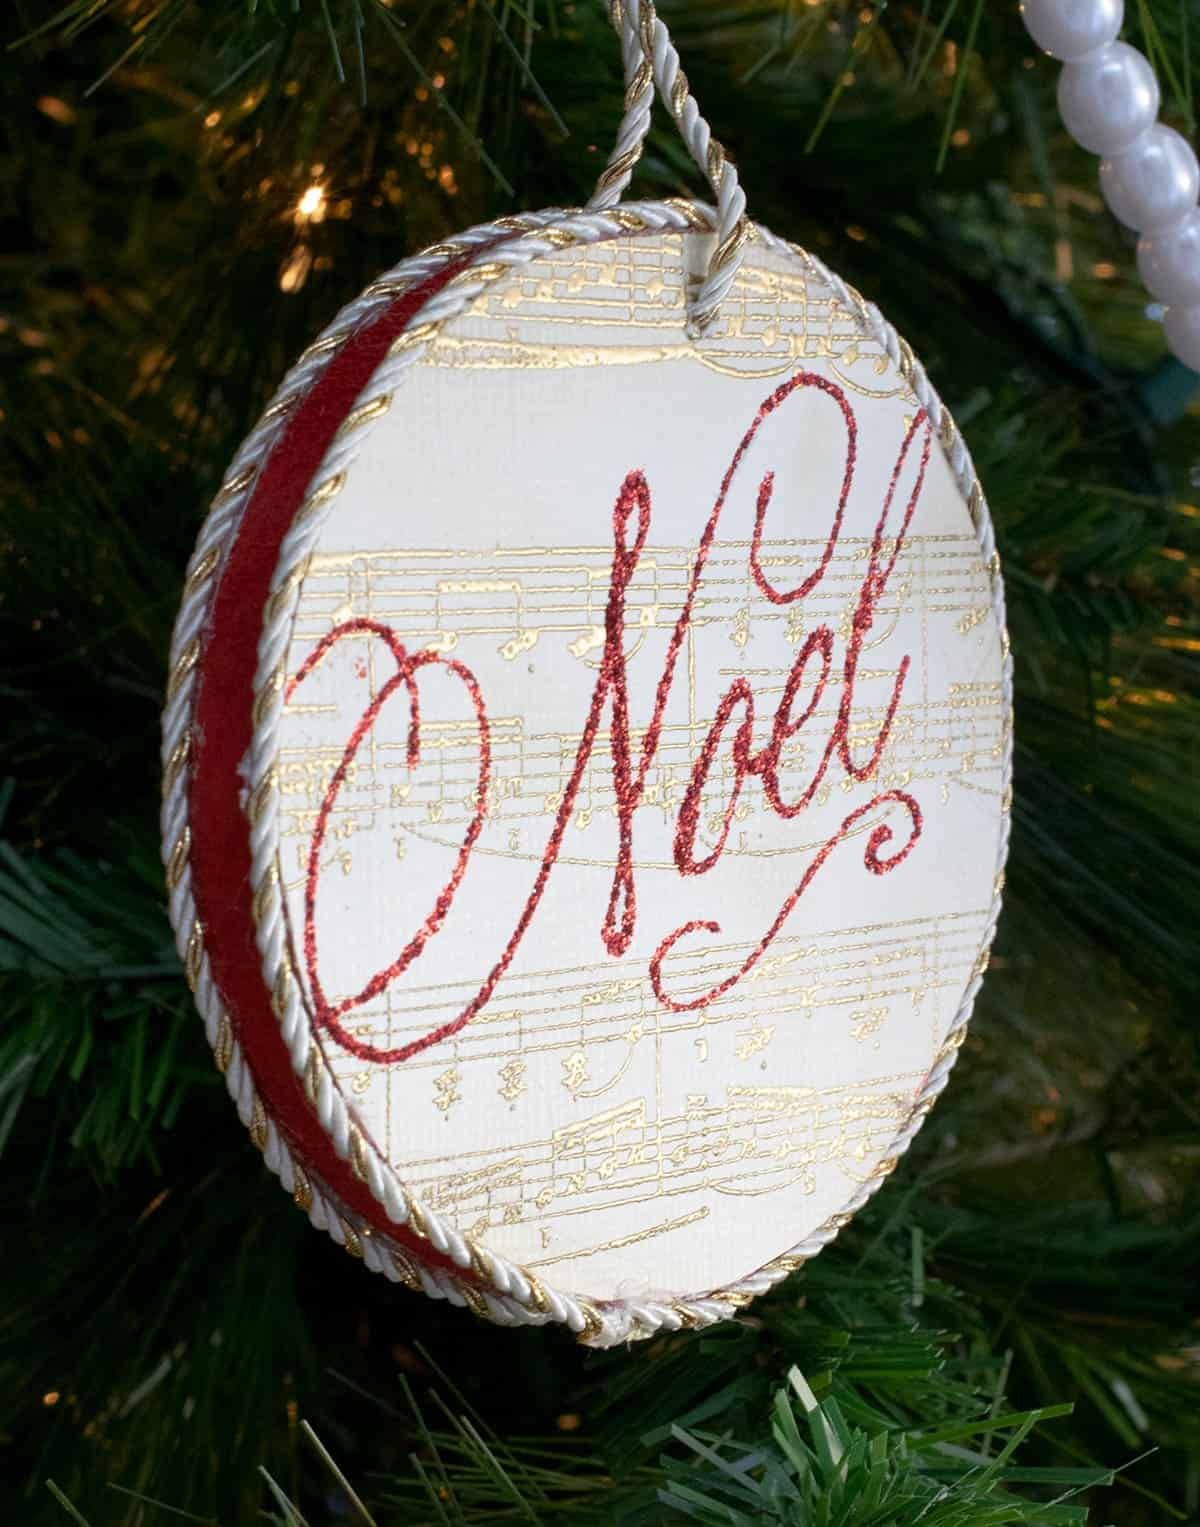 DIY round stamped ornament with gold sheet music print and Noel stamped in red lettering hanging from tree with gold rope.